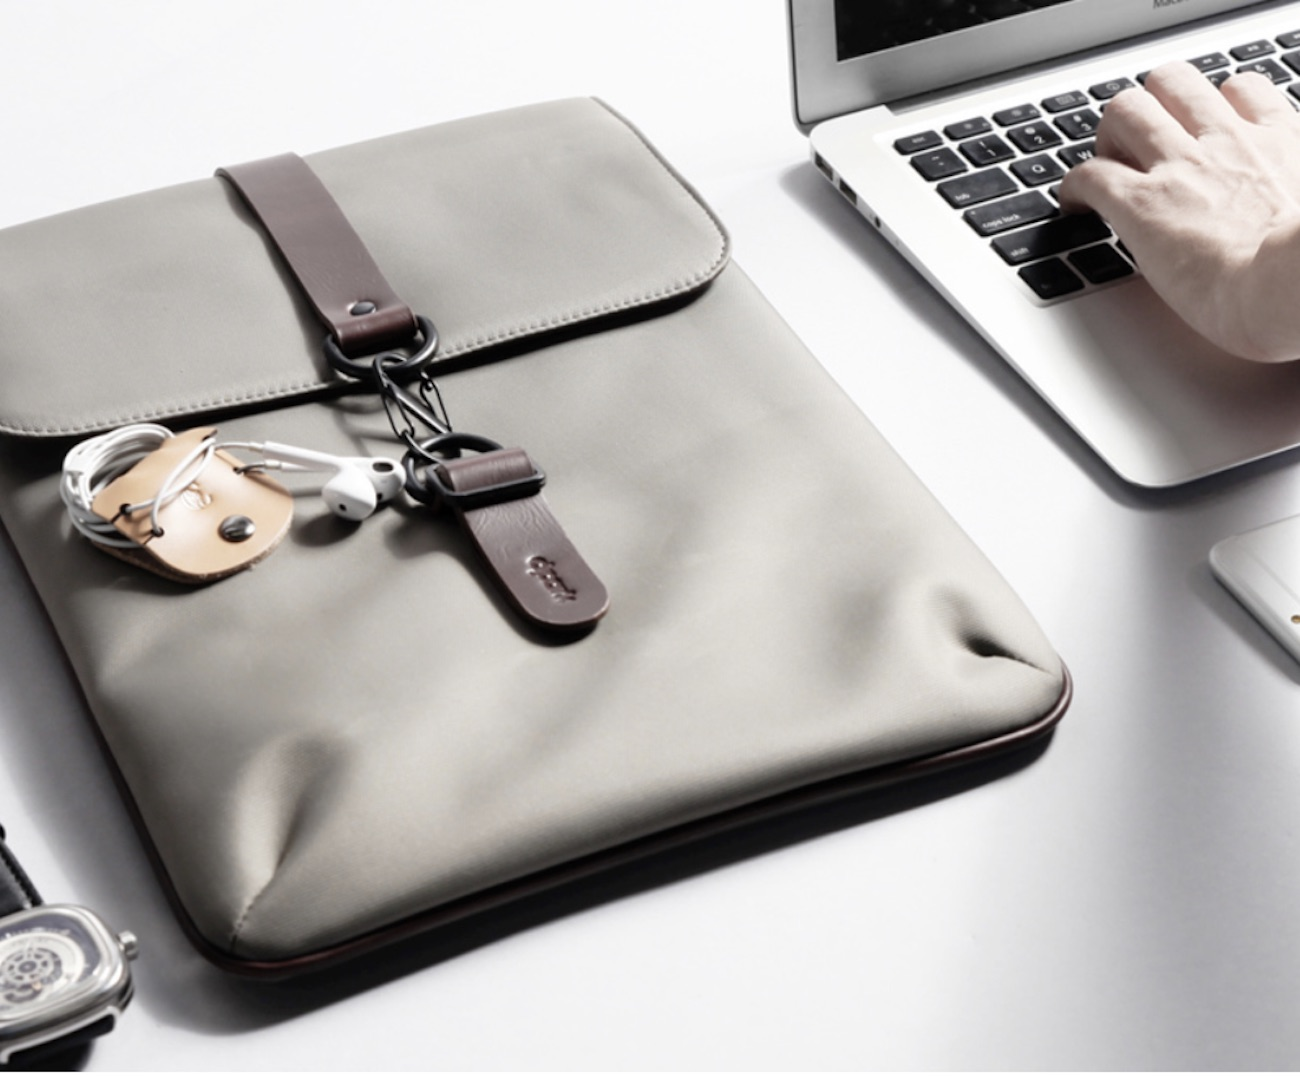 Waterproof Laptop Pouch protects more than just your laptop